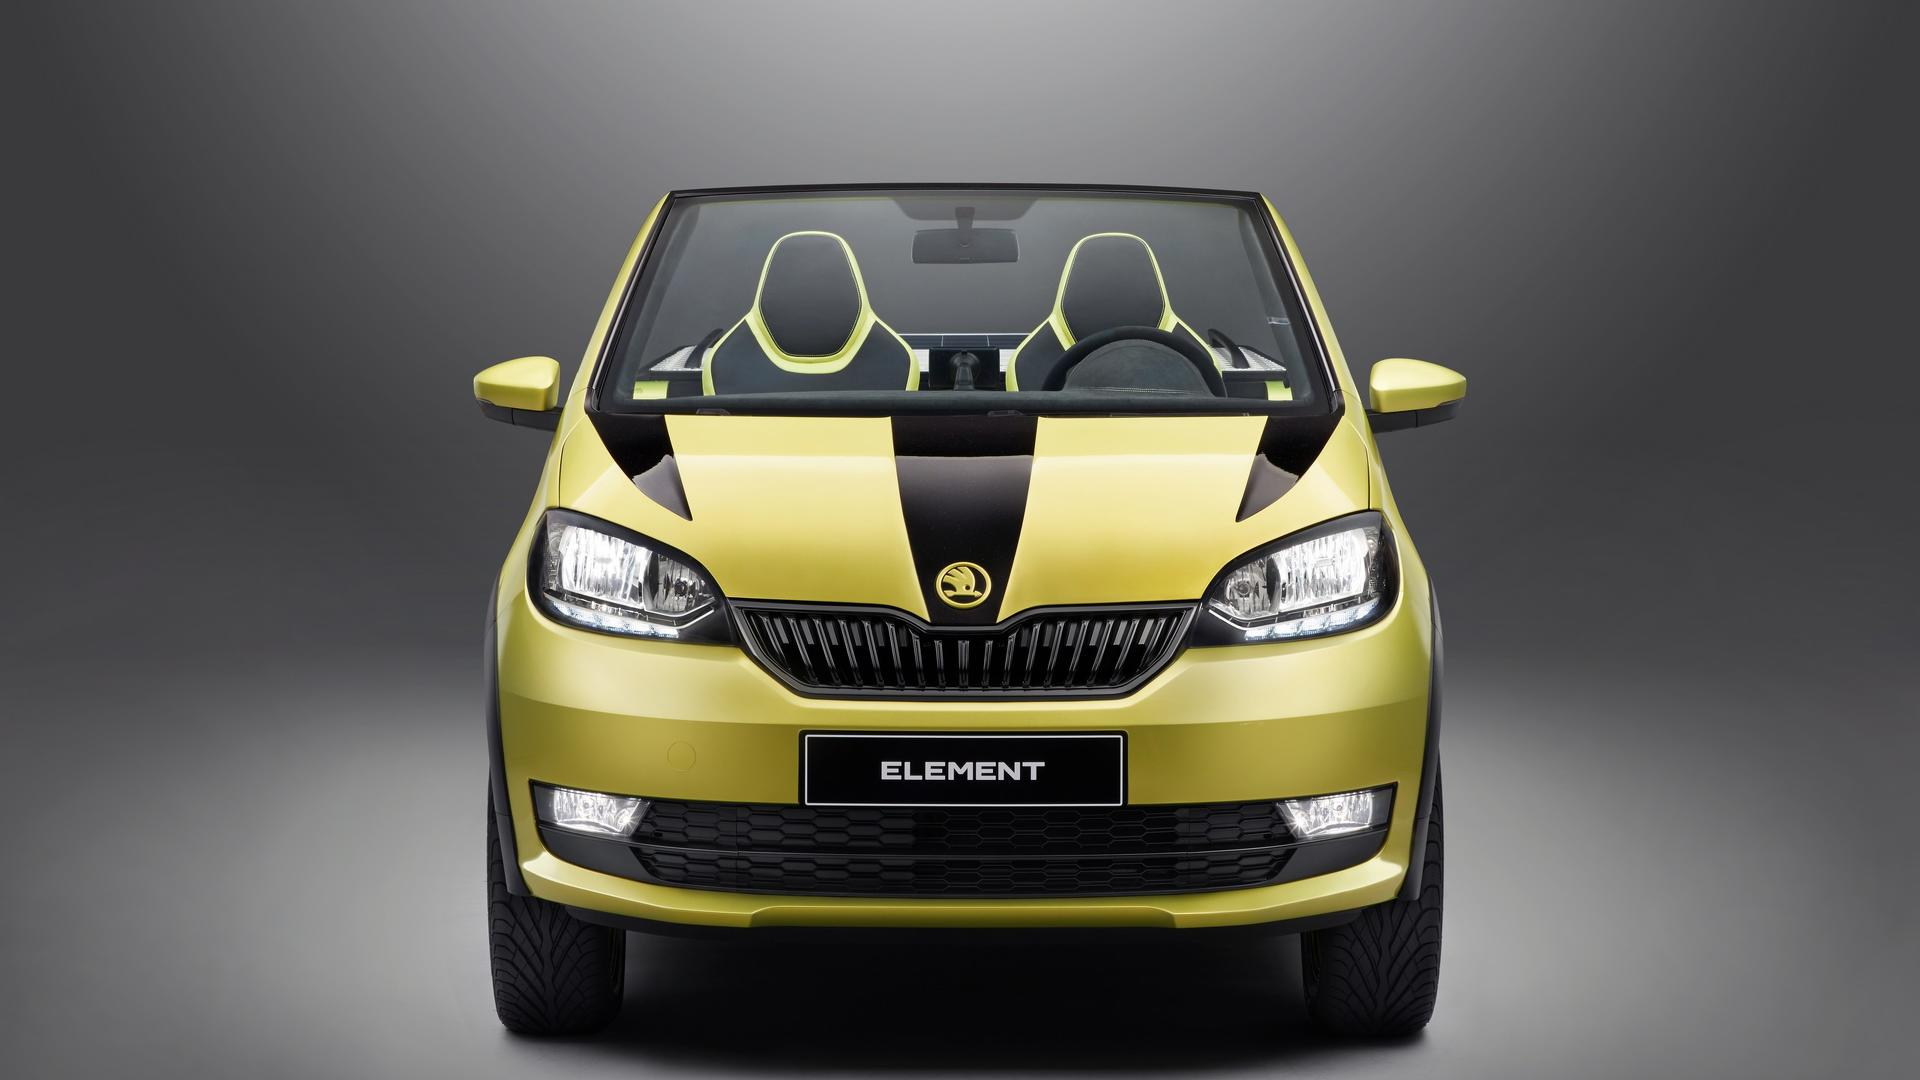 Skoda Element Electric Buggy concept (2)